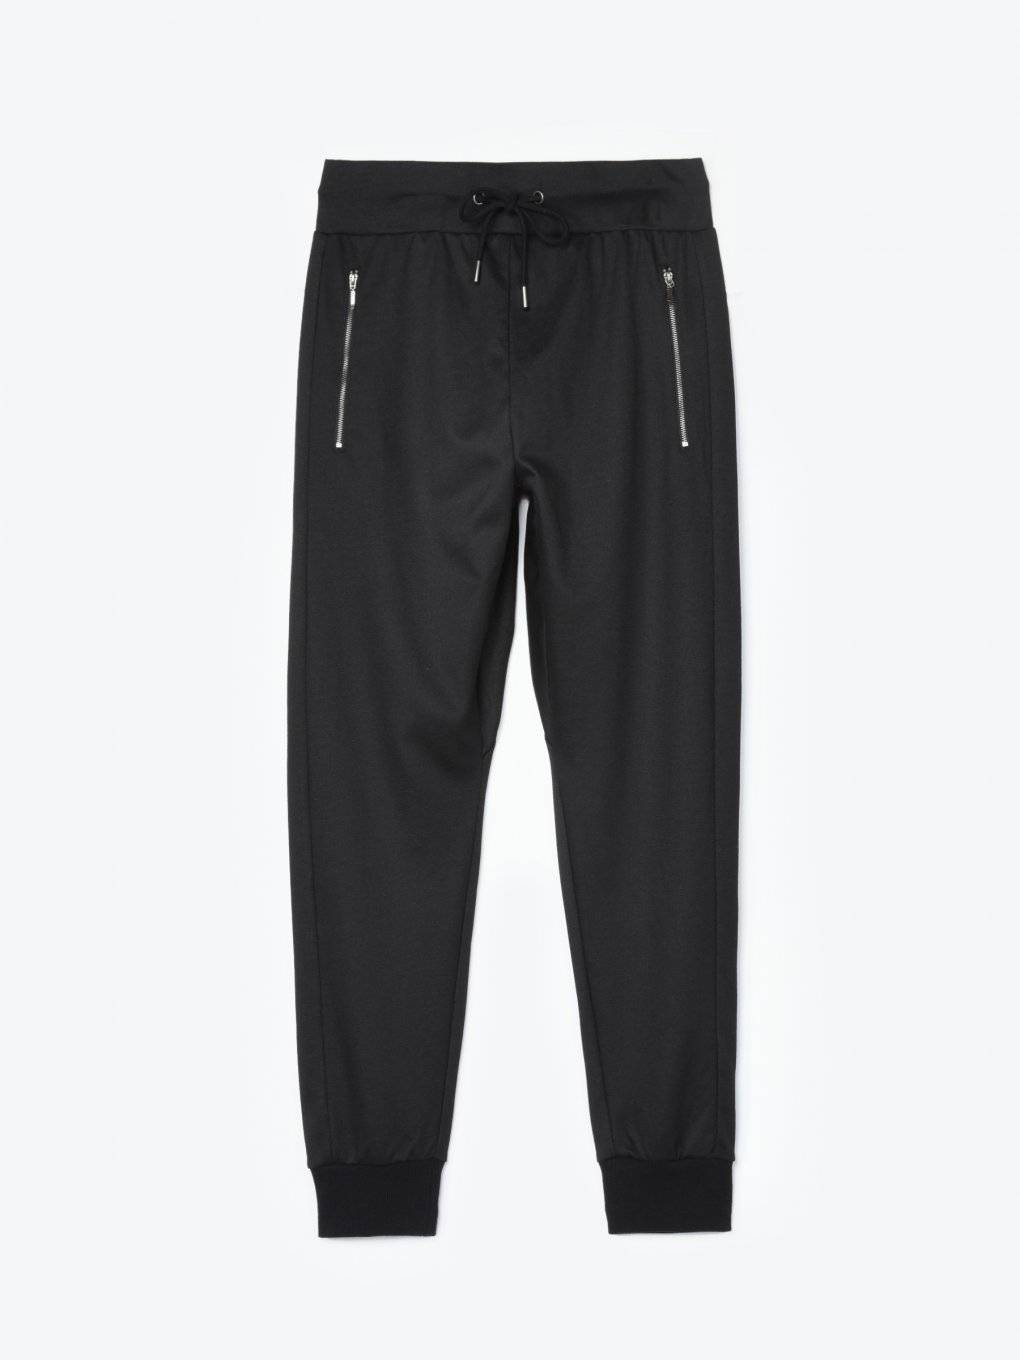 Basic joggers with zipper pockets